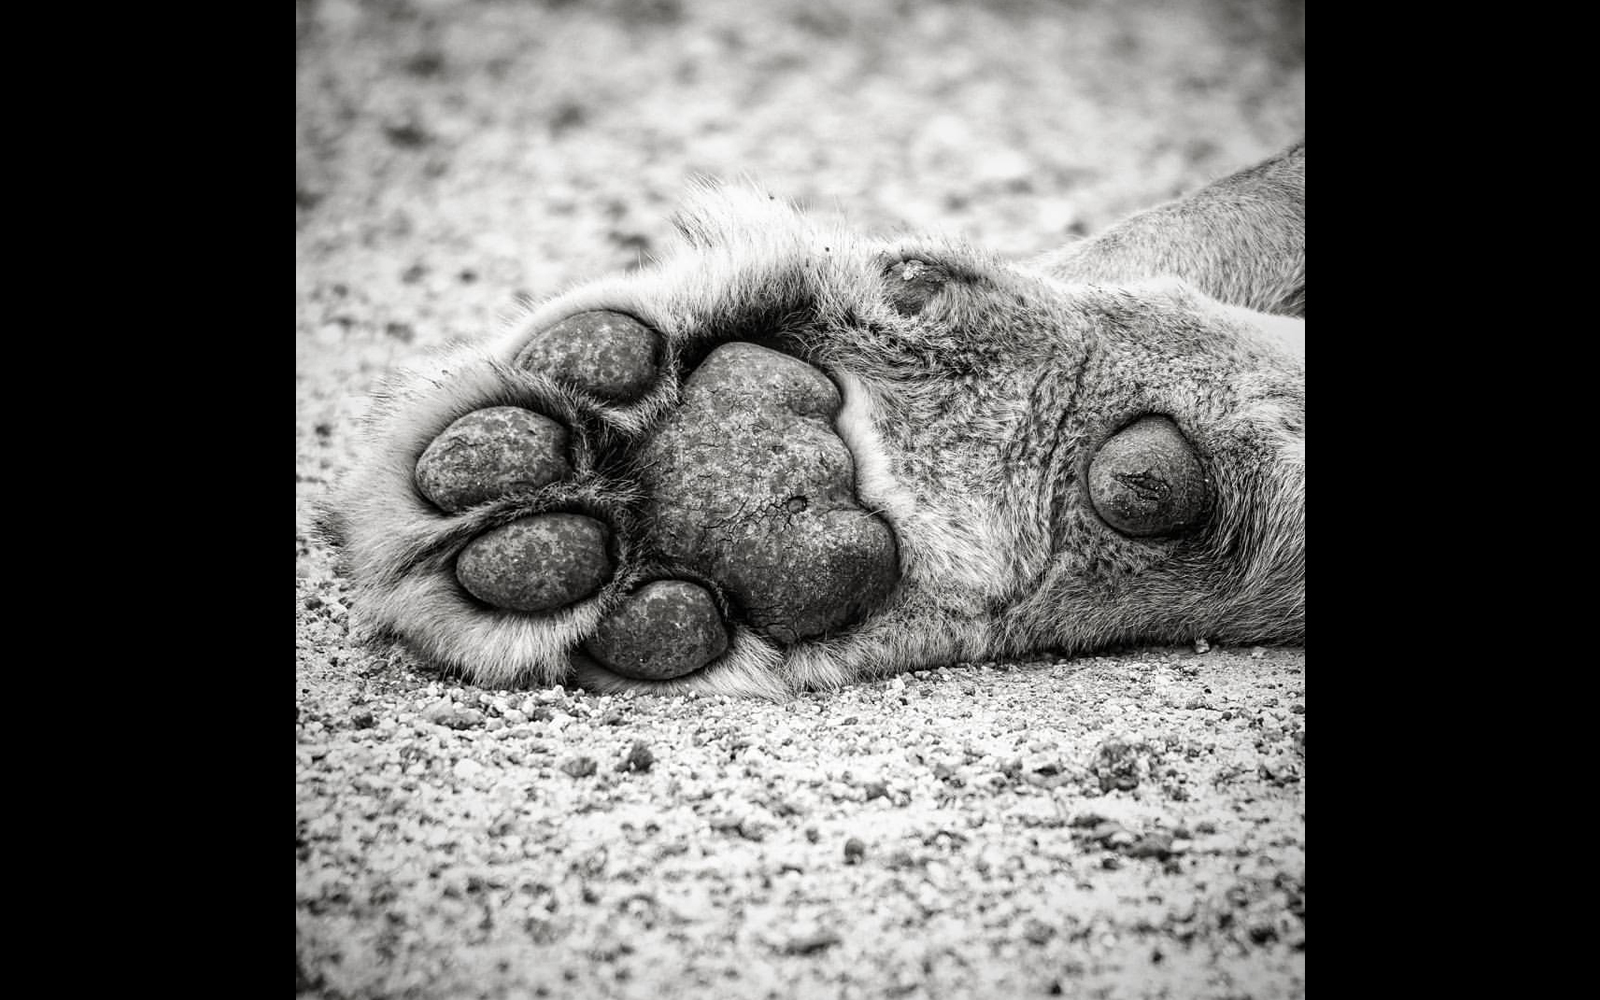 Close up of a lion's paw in Timbavati Private Nature Reserve, South Africa © Ryno Vosloo (Instagram/rynovosloo_safari)